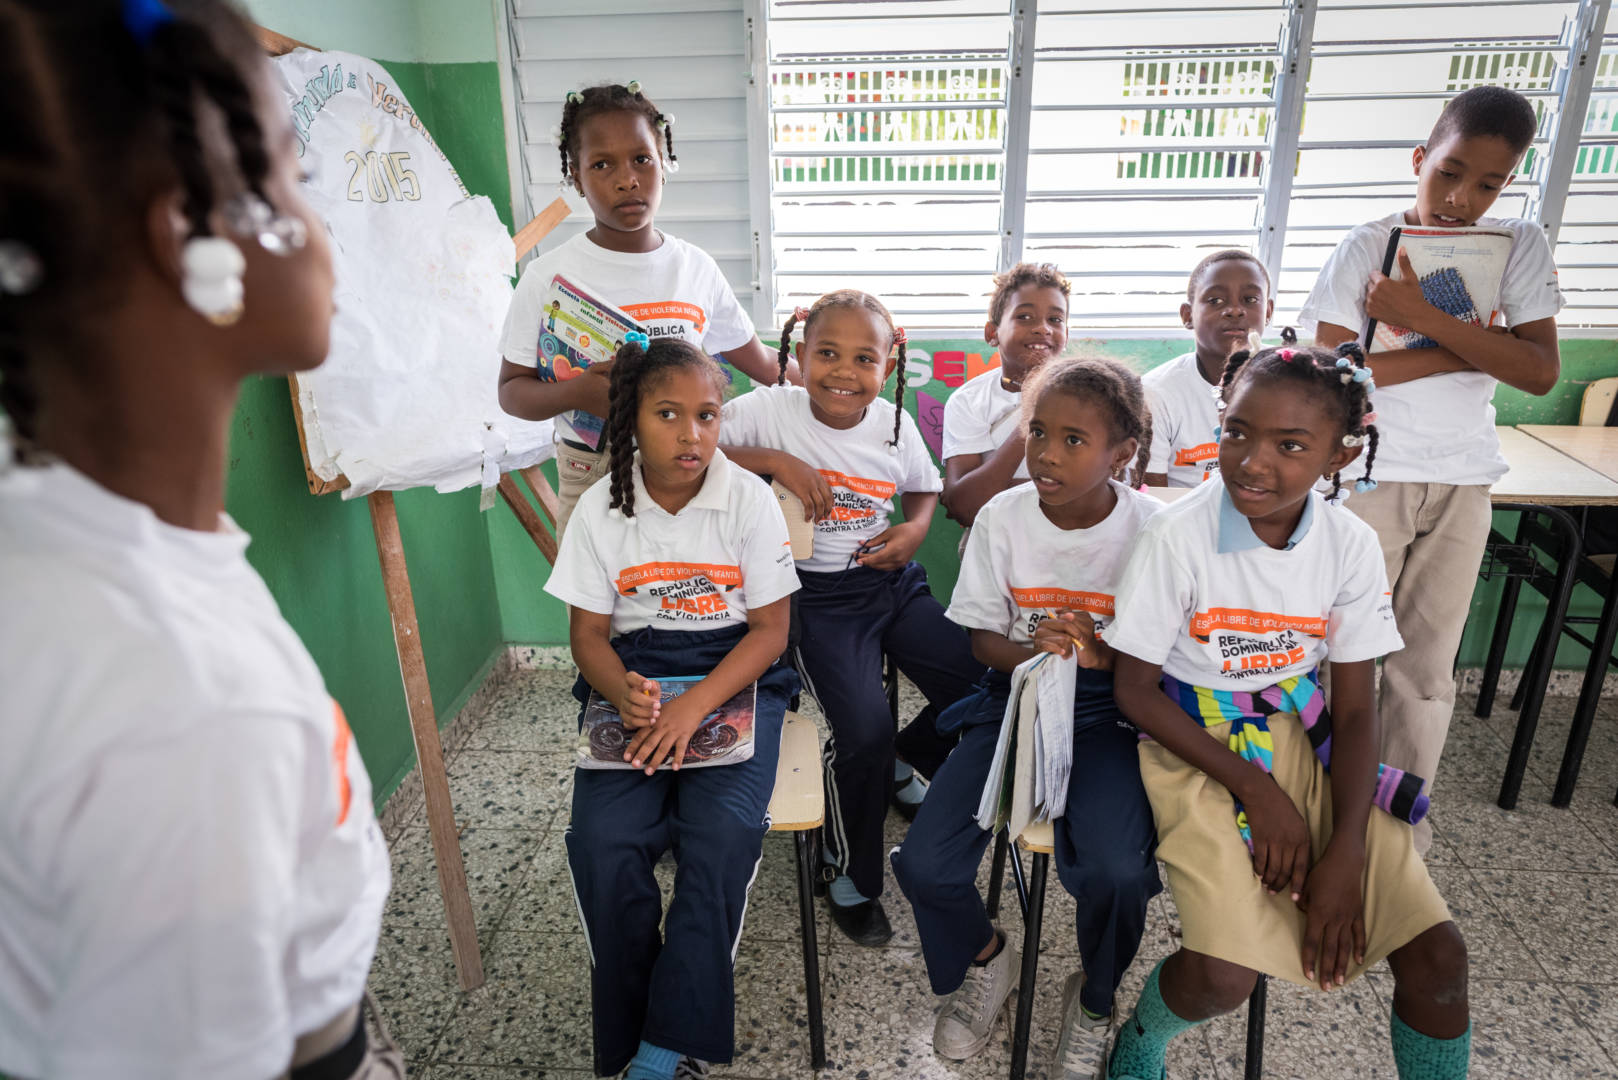 Students at Centro Educativo Las 100 elementary school in the Dominican Republic participate in an anti-bullying workshop skit. Skits show kids how to talk through problems, express themselves, and identify when to seek help.